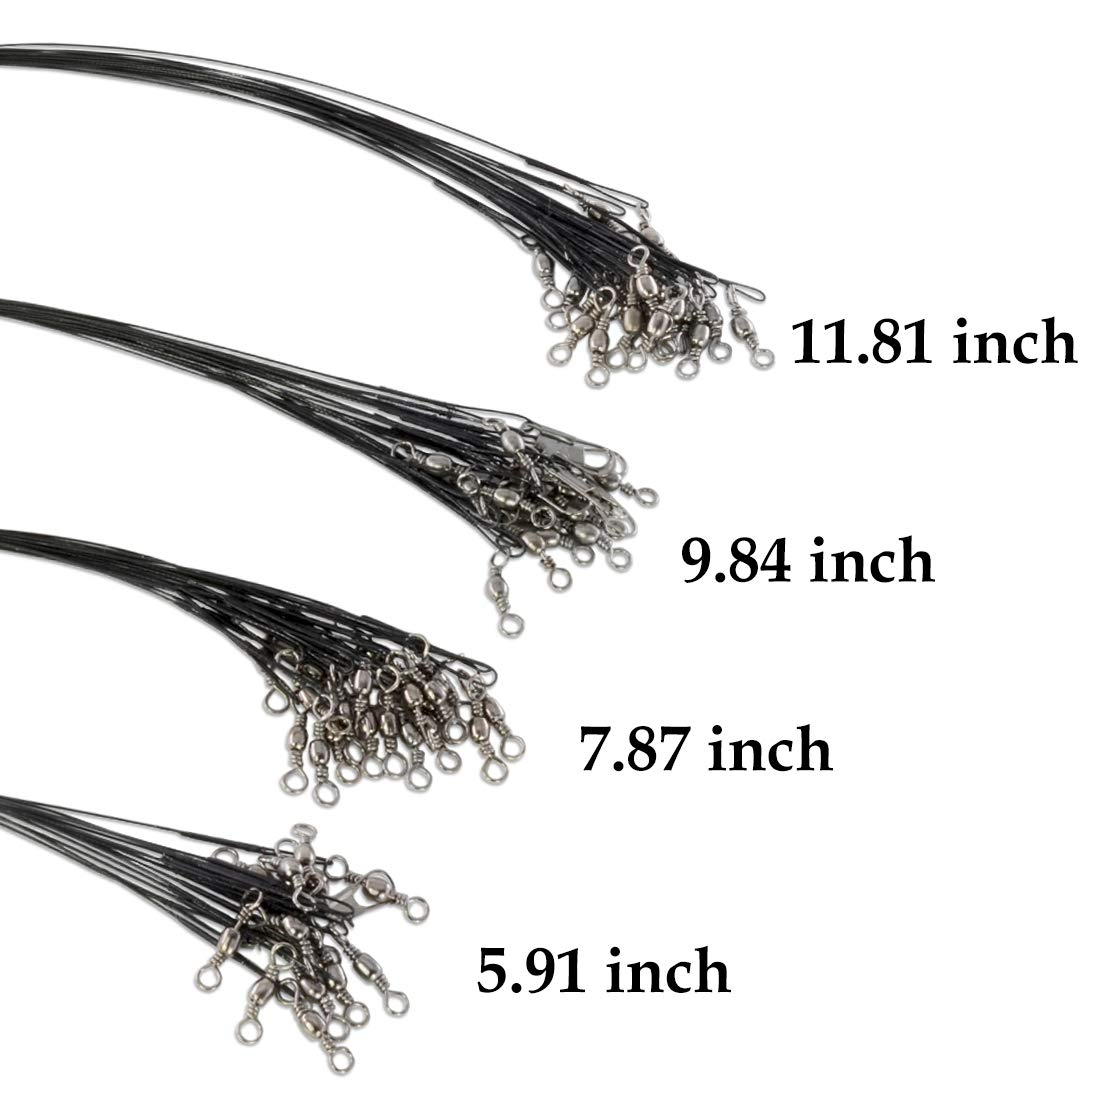 Stainless Steel Wires with Swivels and Snaps 30 LBS Test Soft Plastic Coated Wires ROSE KULI Fishing Leaders Line Set